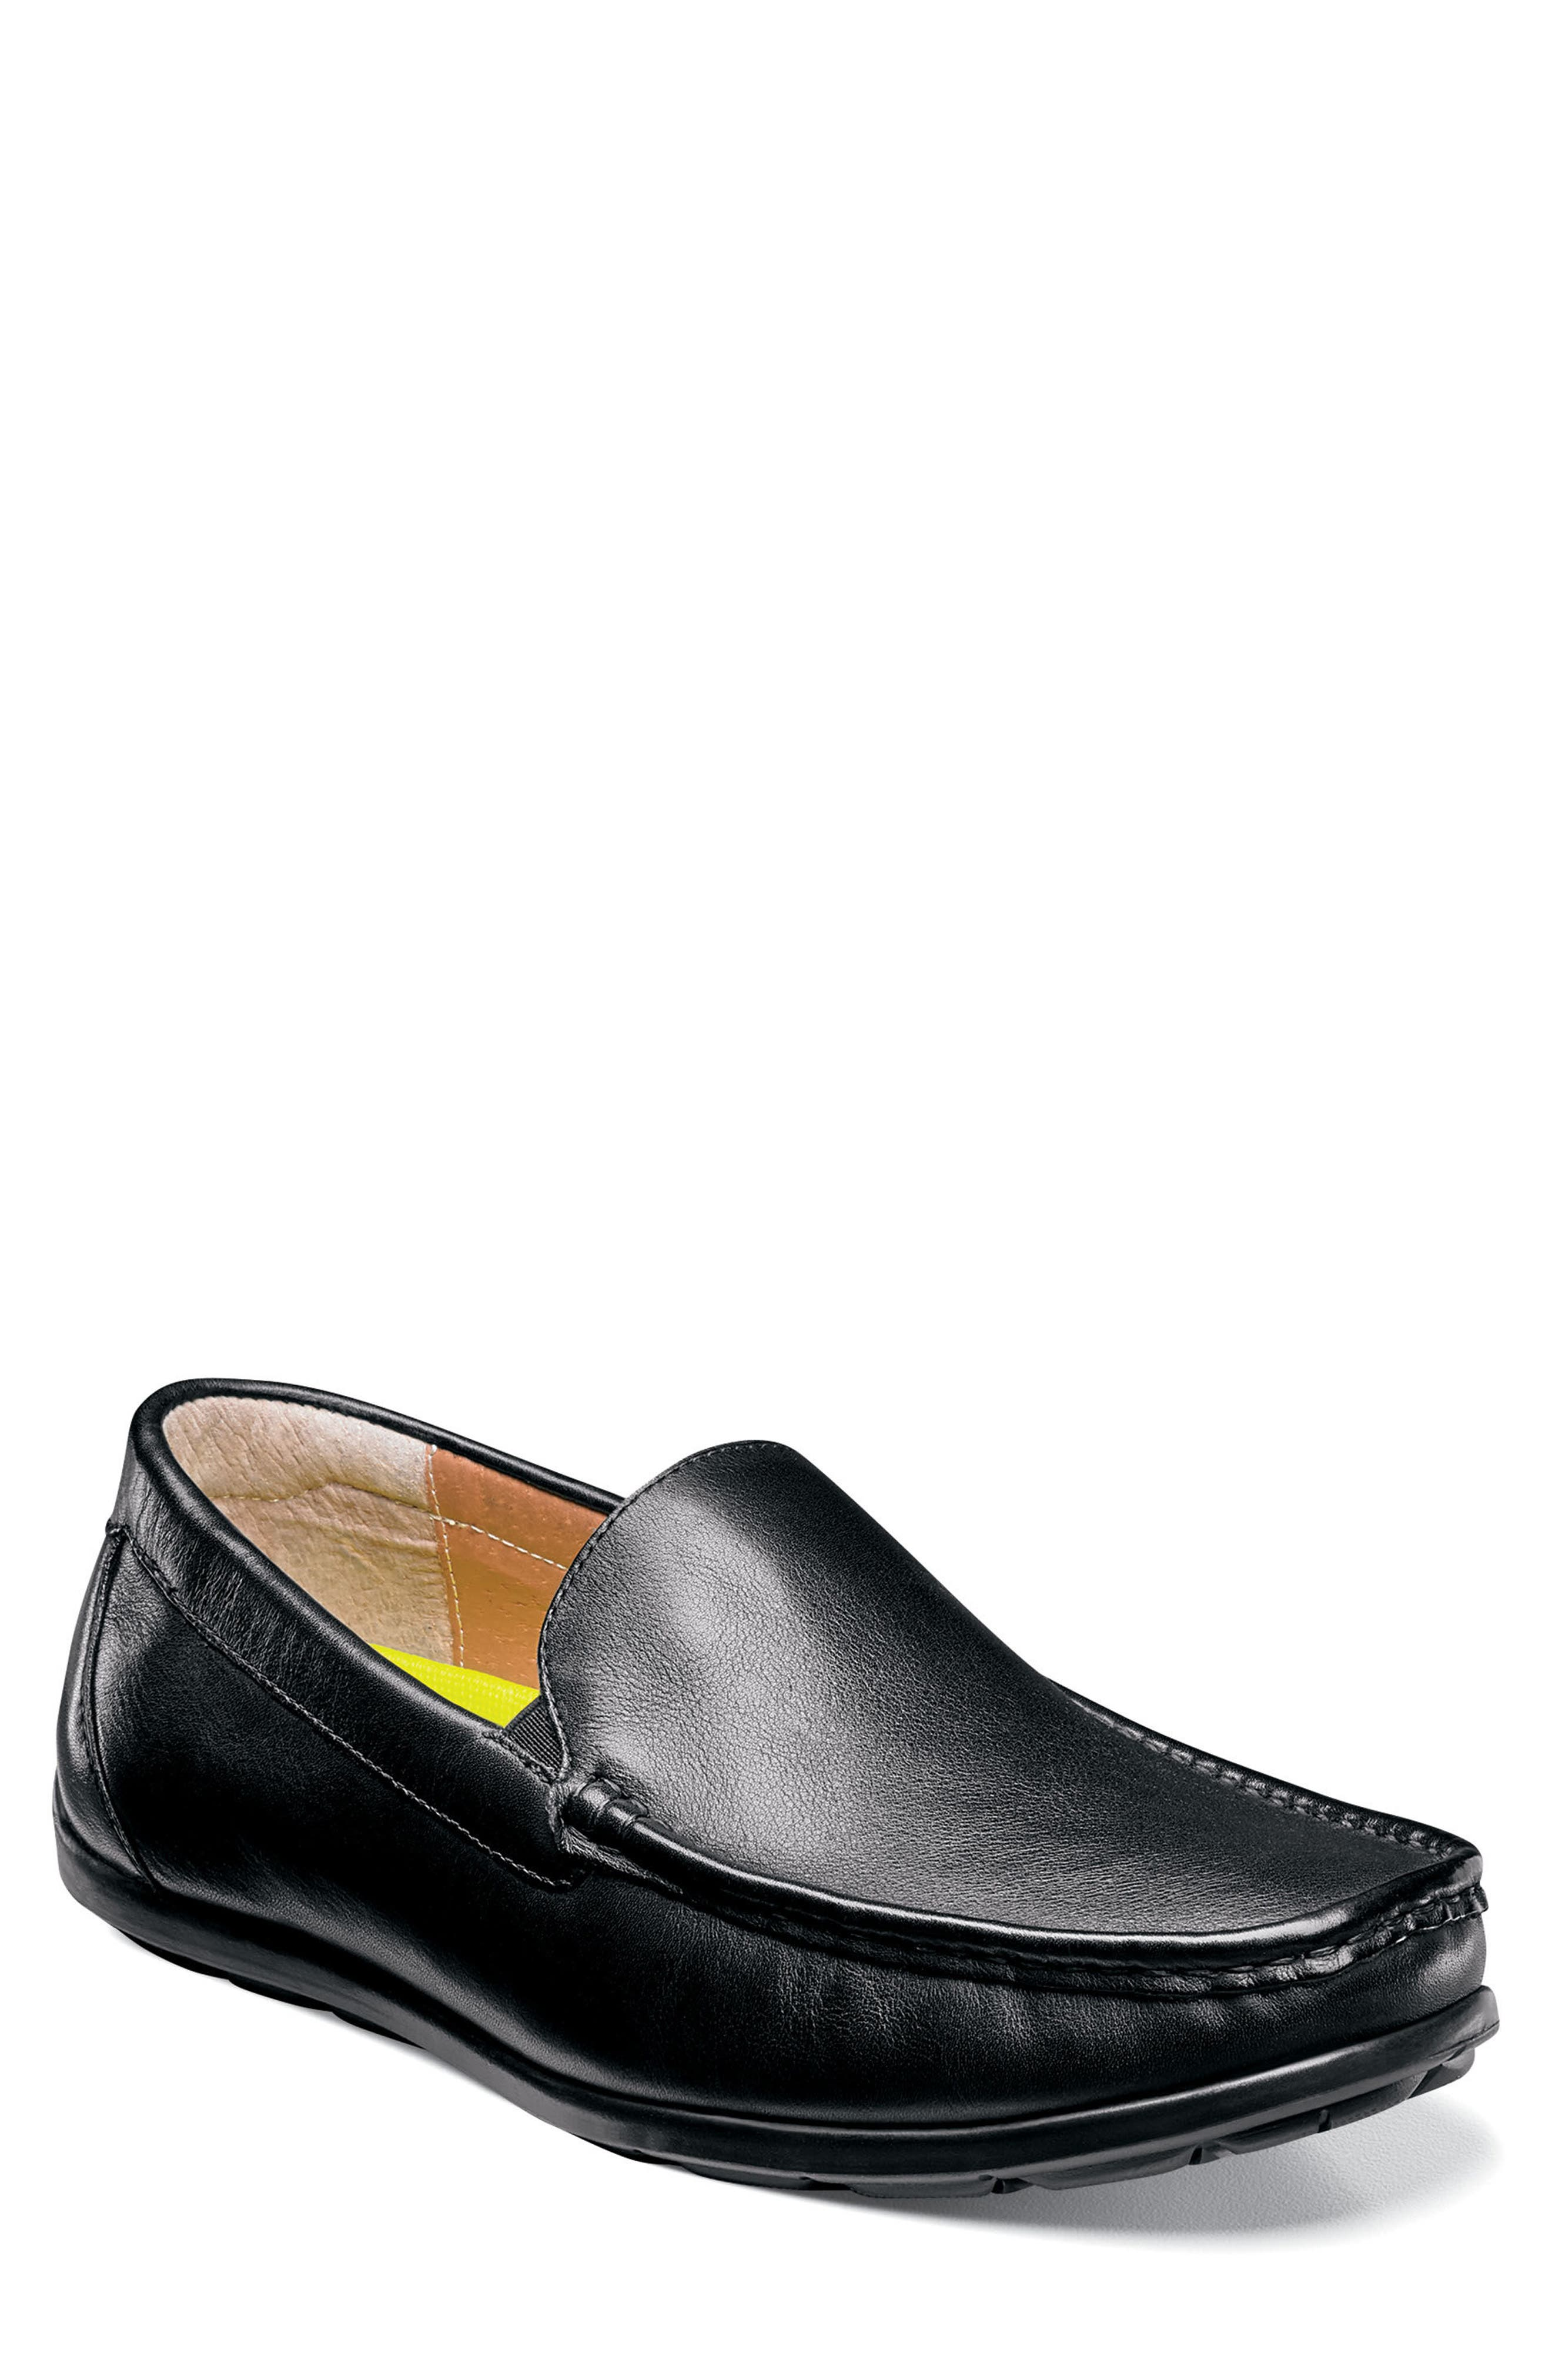 Comfortech Draft Loafer,                             Main thumbnail 1, color,                             001